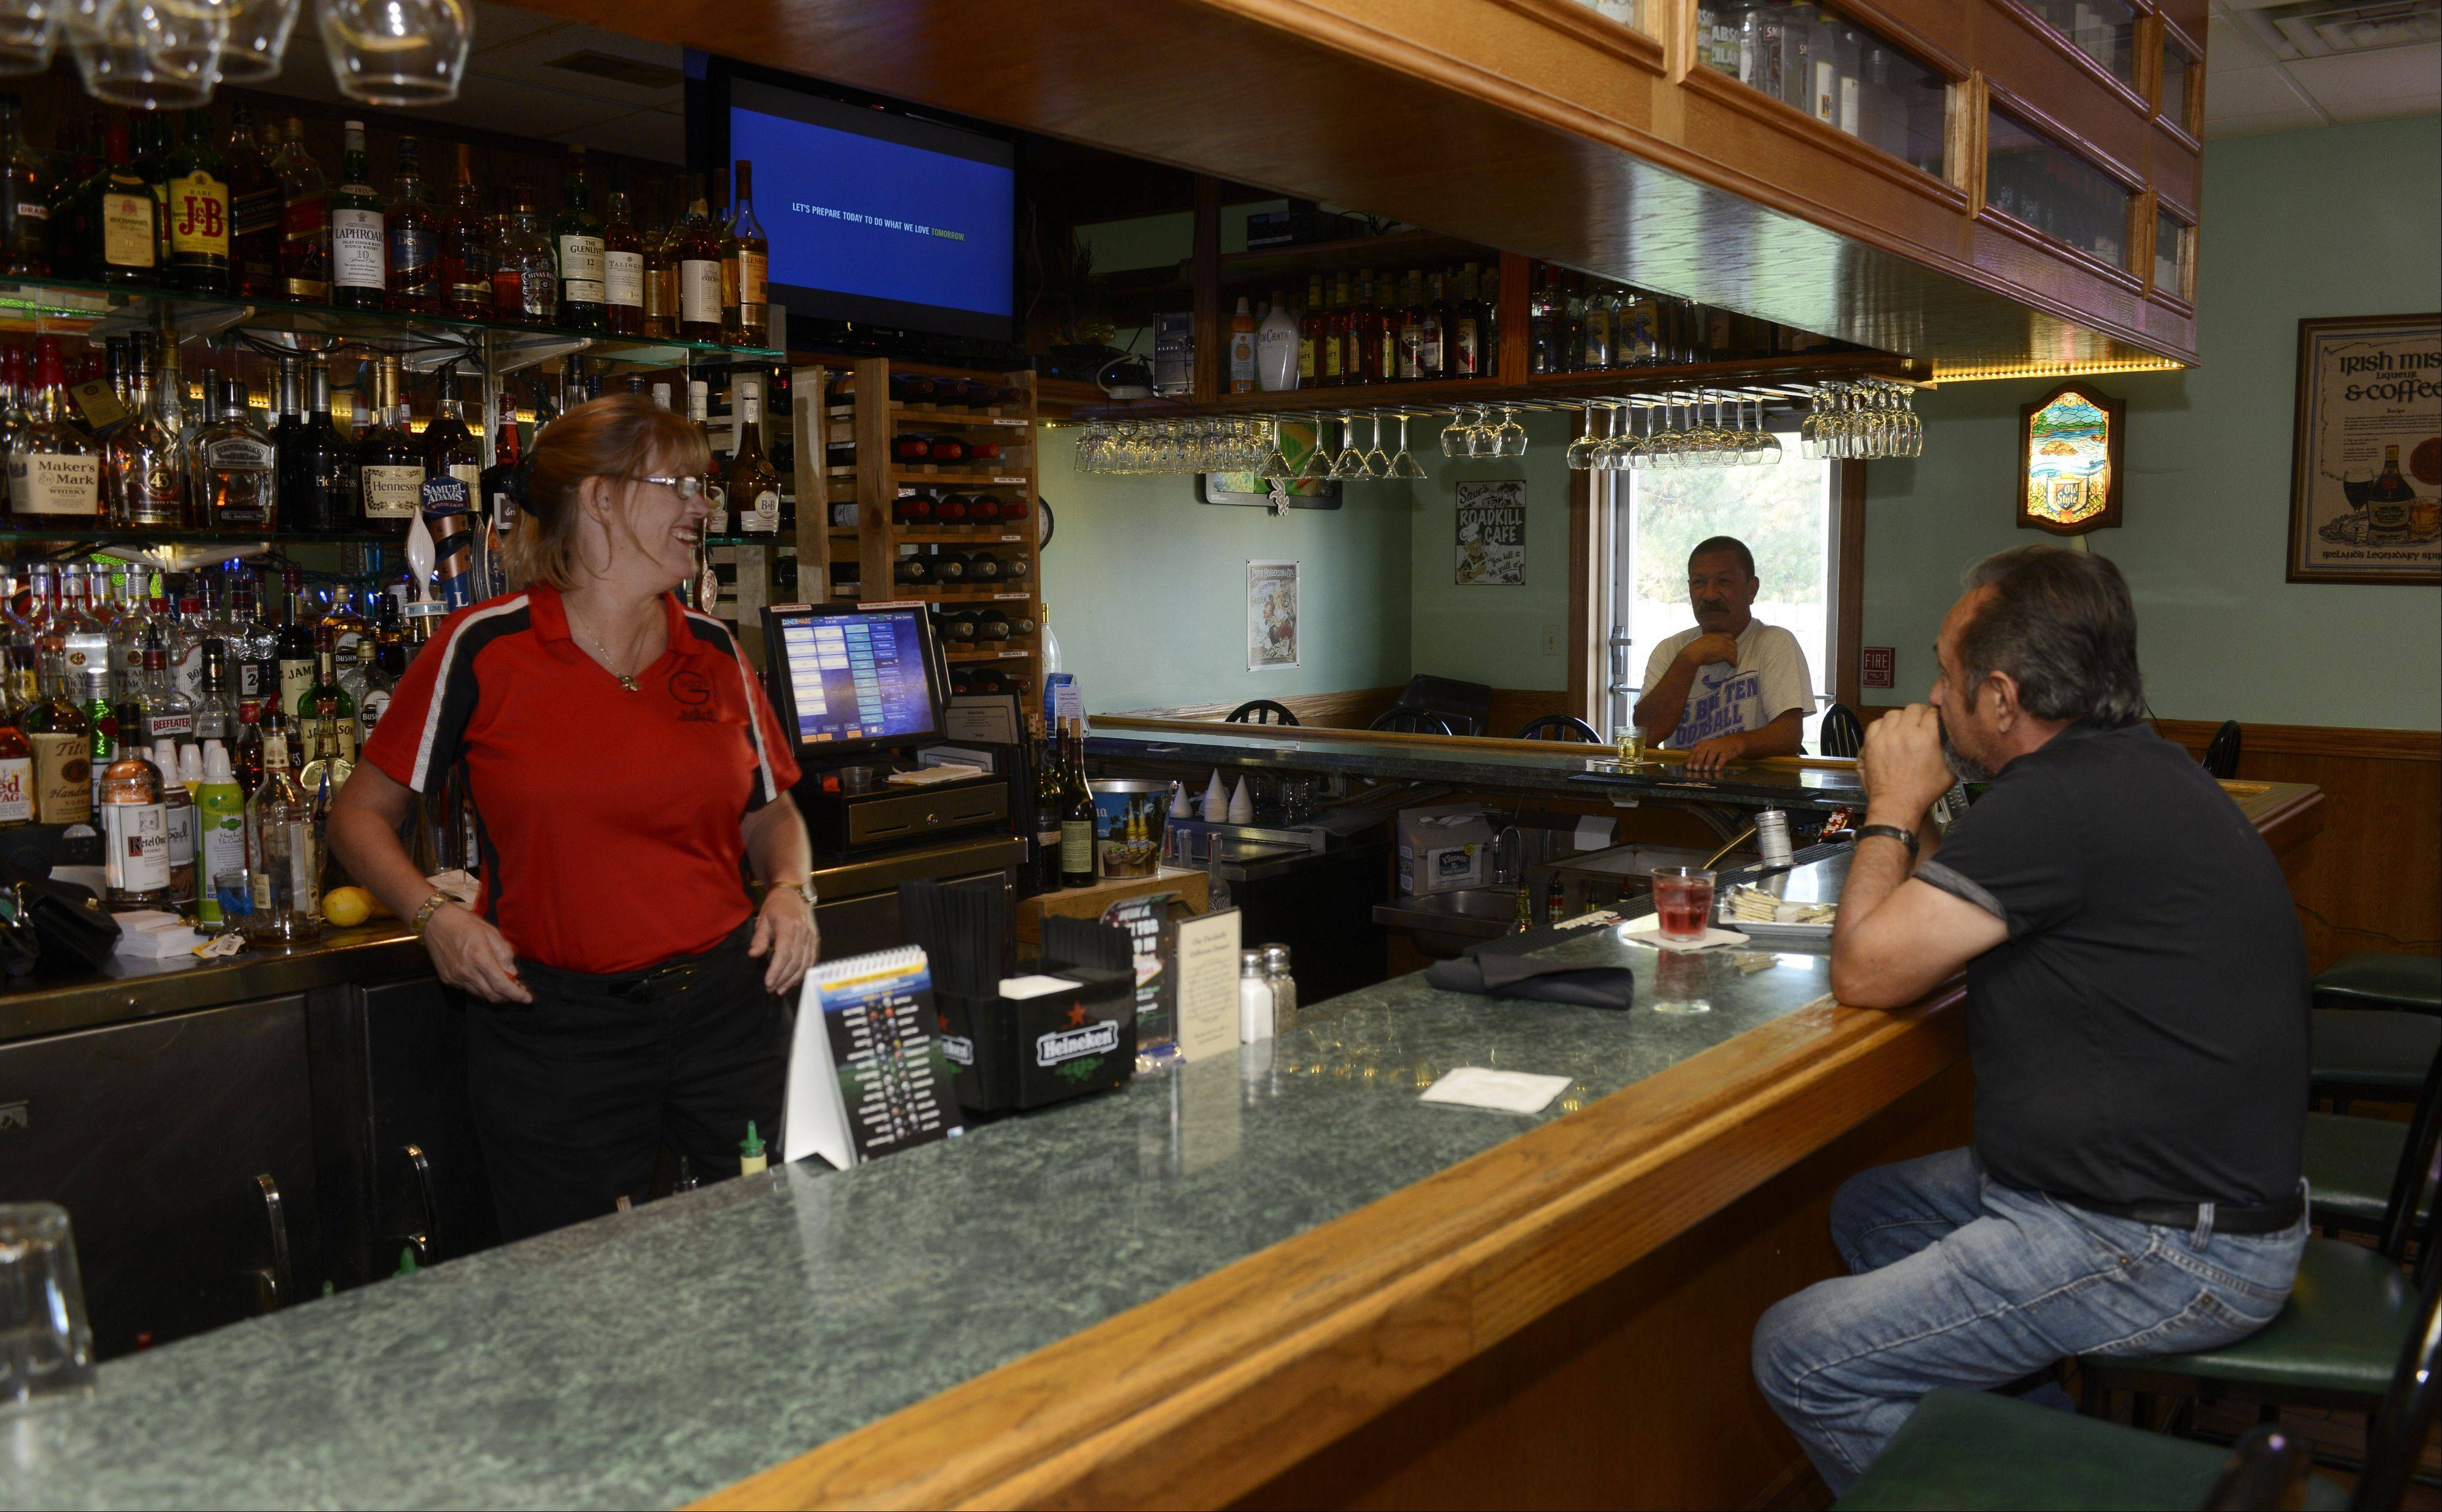 Gugg's Roadhouse serves a selection of domestic and craft brews.